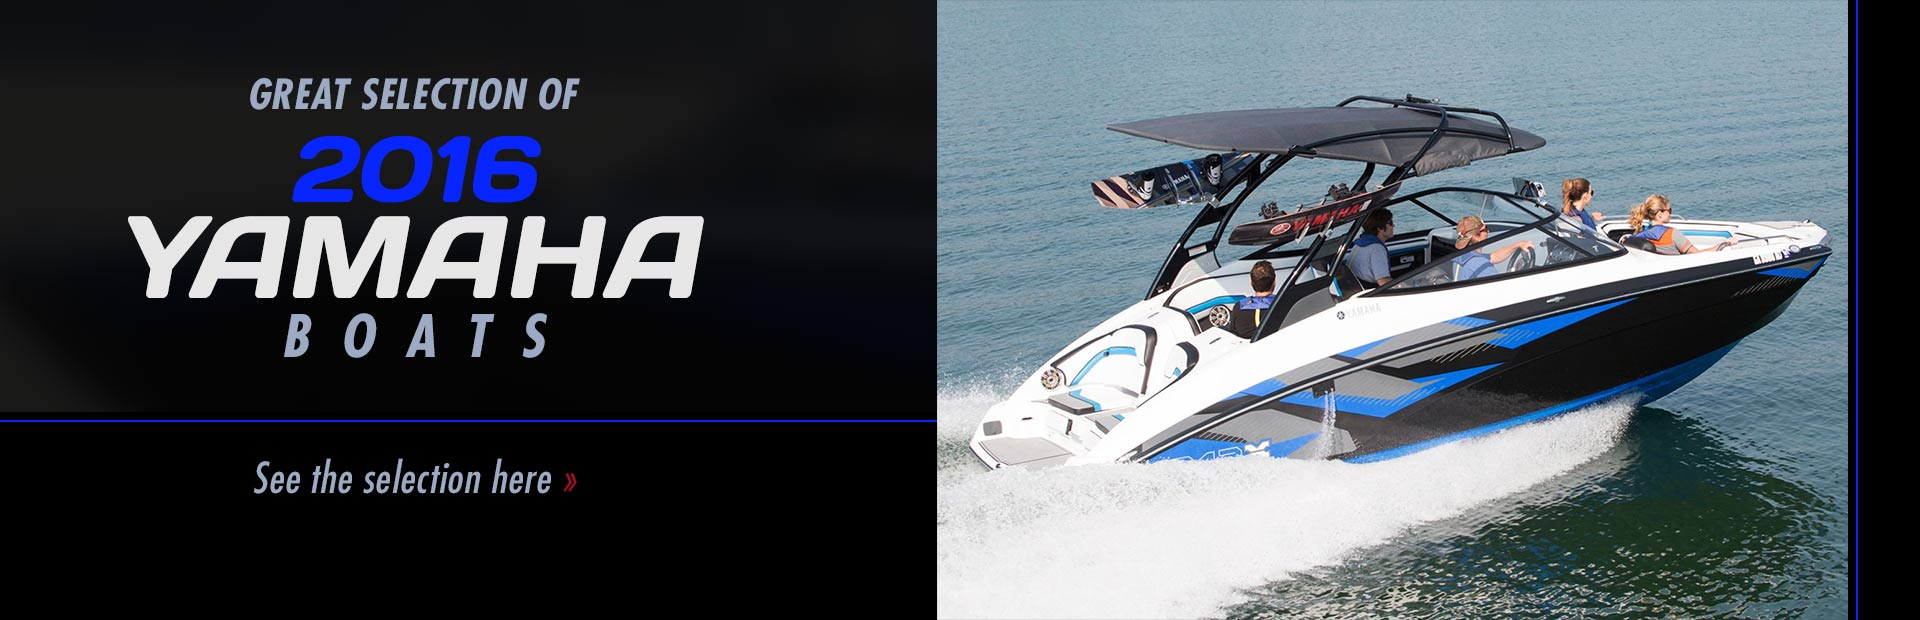 Click here to view our great selection of 2016 Yamaha boats!